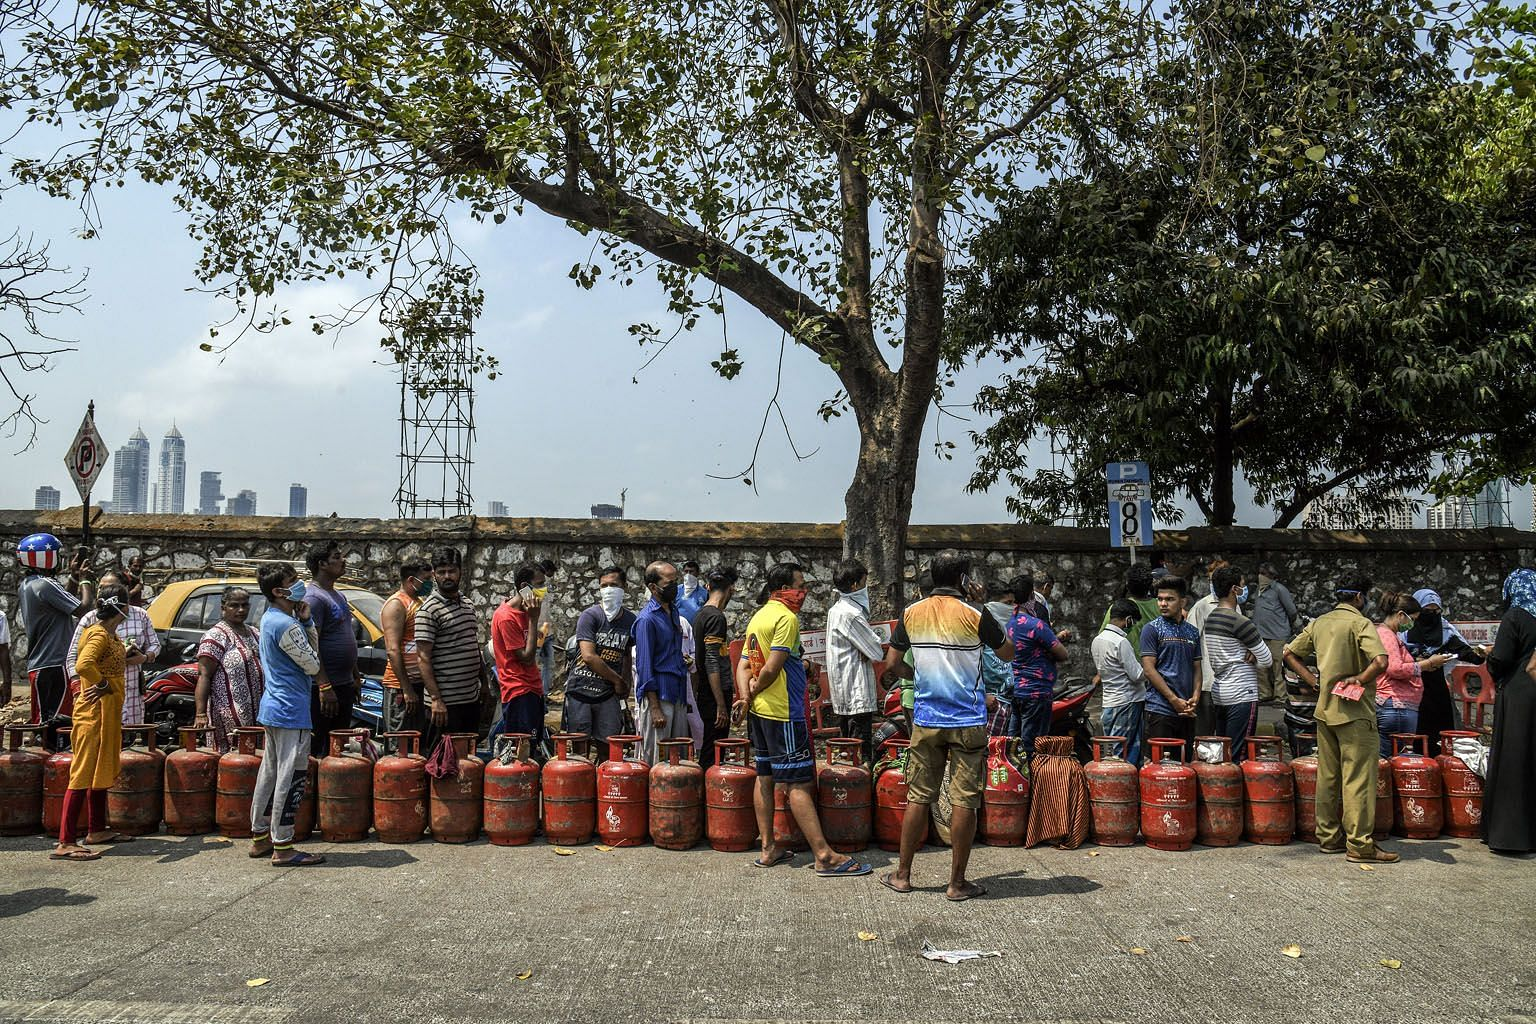 People waiting to purchase cooking gas in Mumbai on Wednesday. India went into lockdown from midnight on Tuesday to prevent the further spread of Covid-19. The complete cessation of economic activity is hitting the poor the hardest.